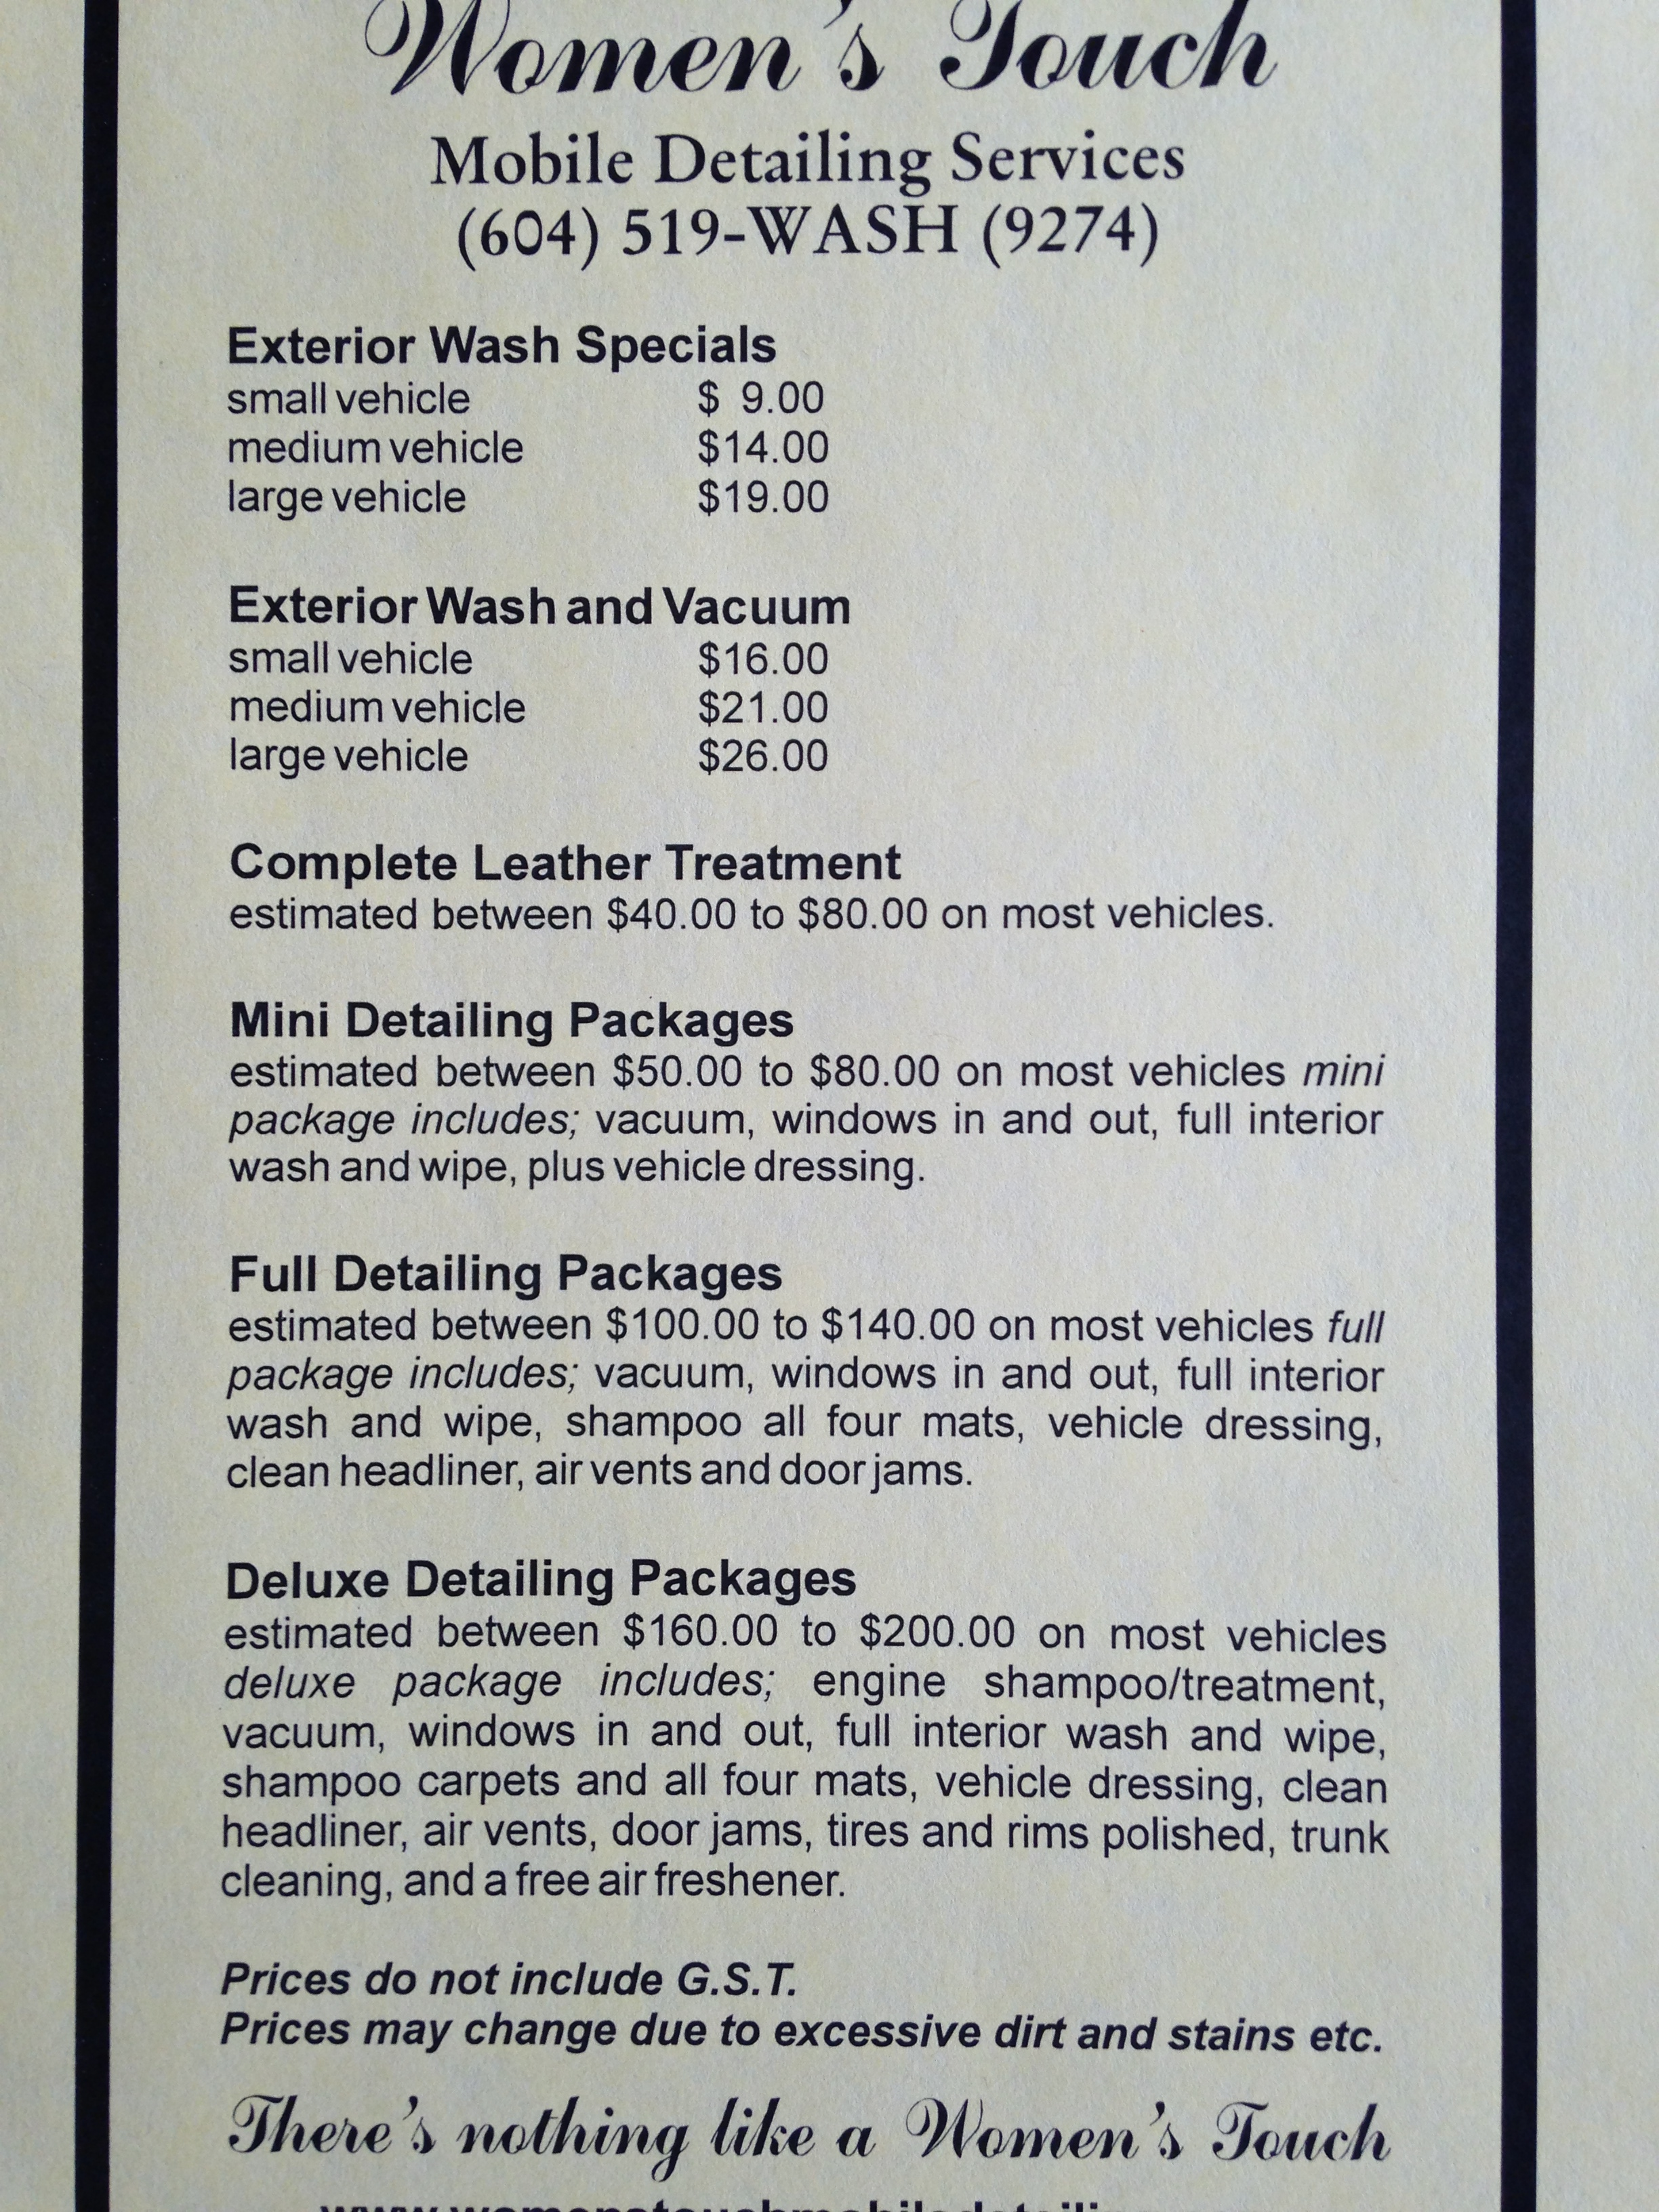 About Women S Touch Mobile Detailing Services We Come To You For